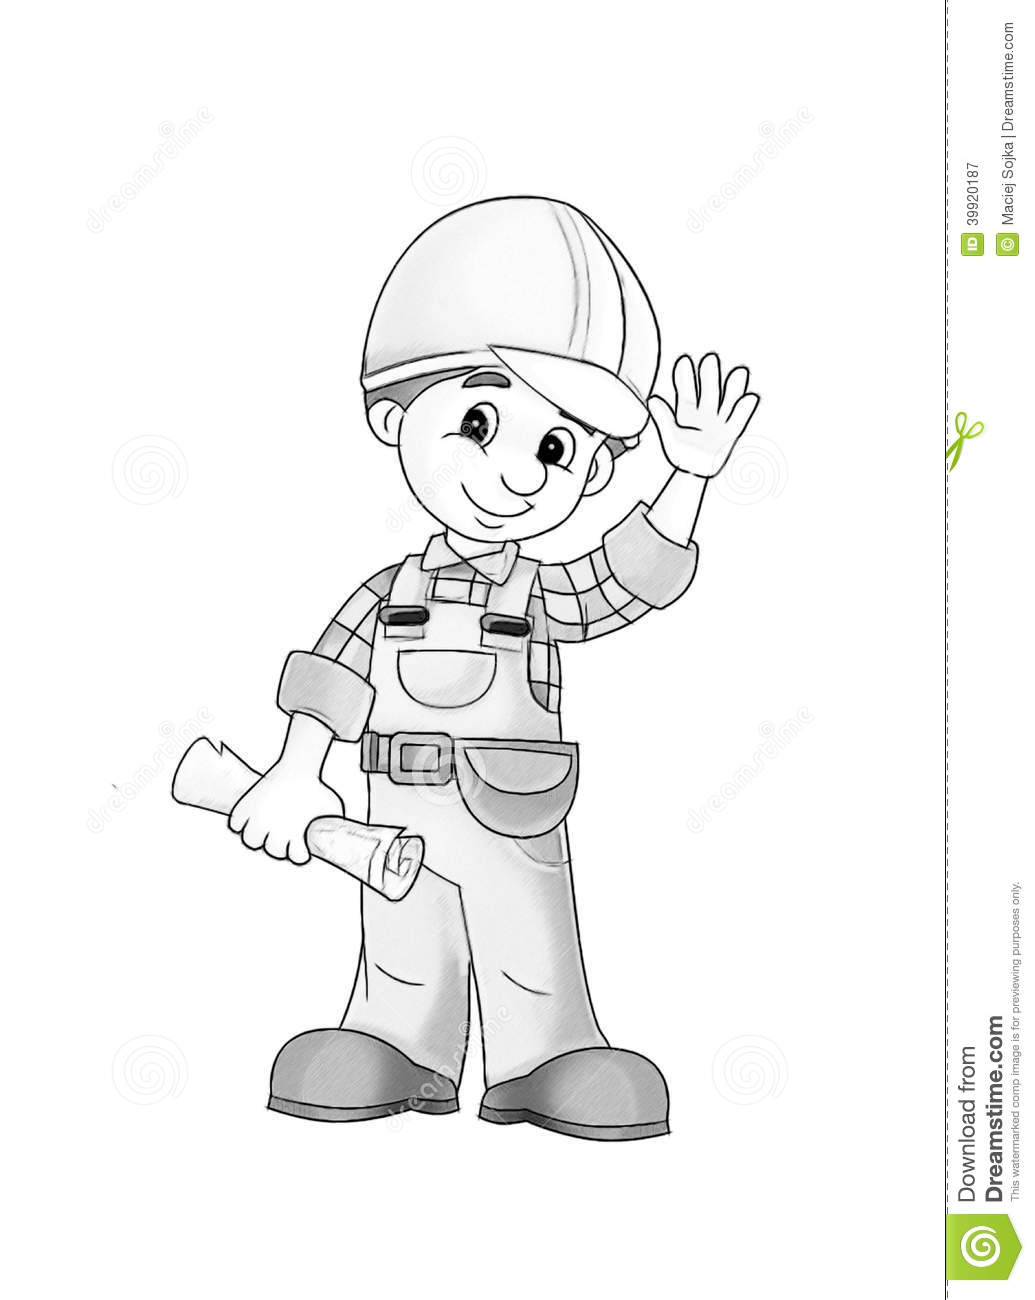 construction site coloring page stock illustration image 39920187